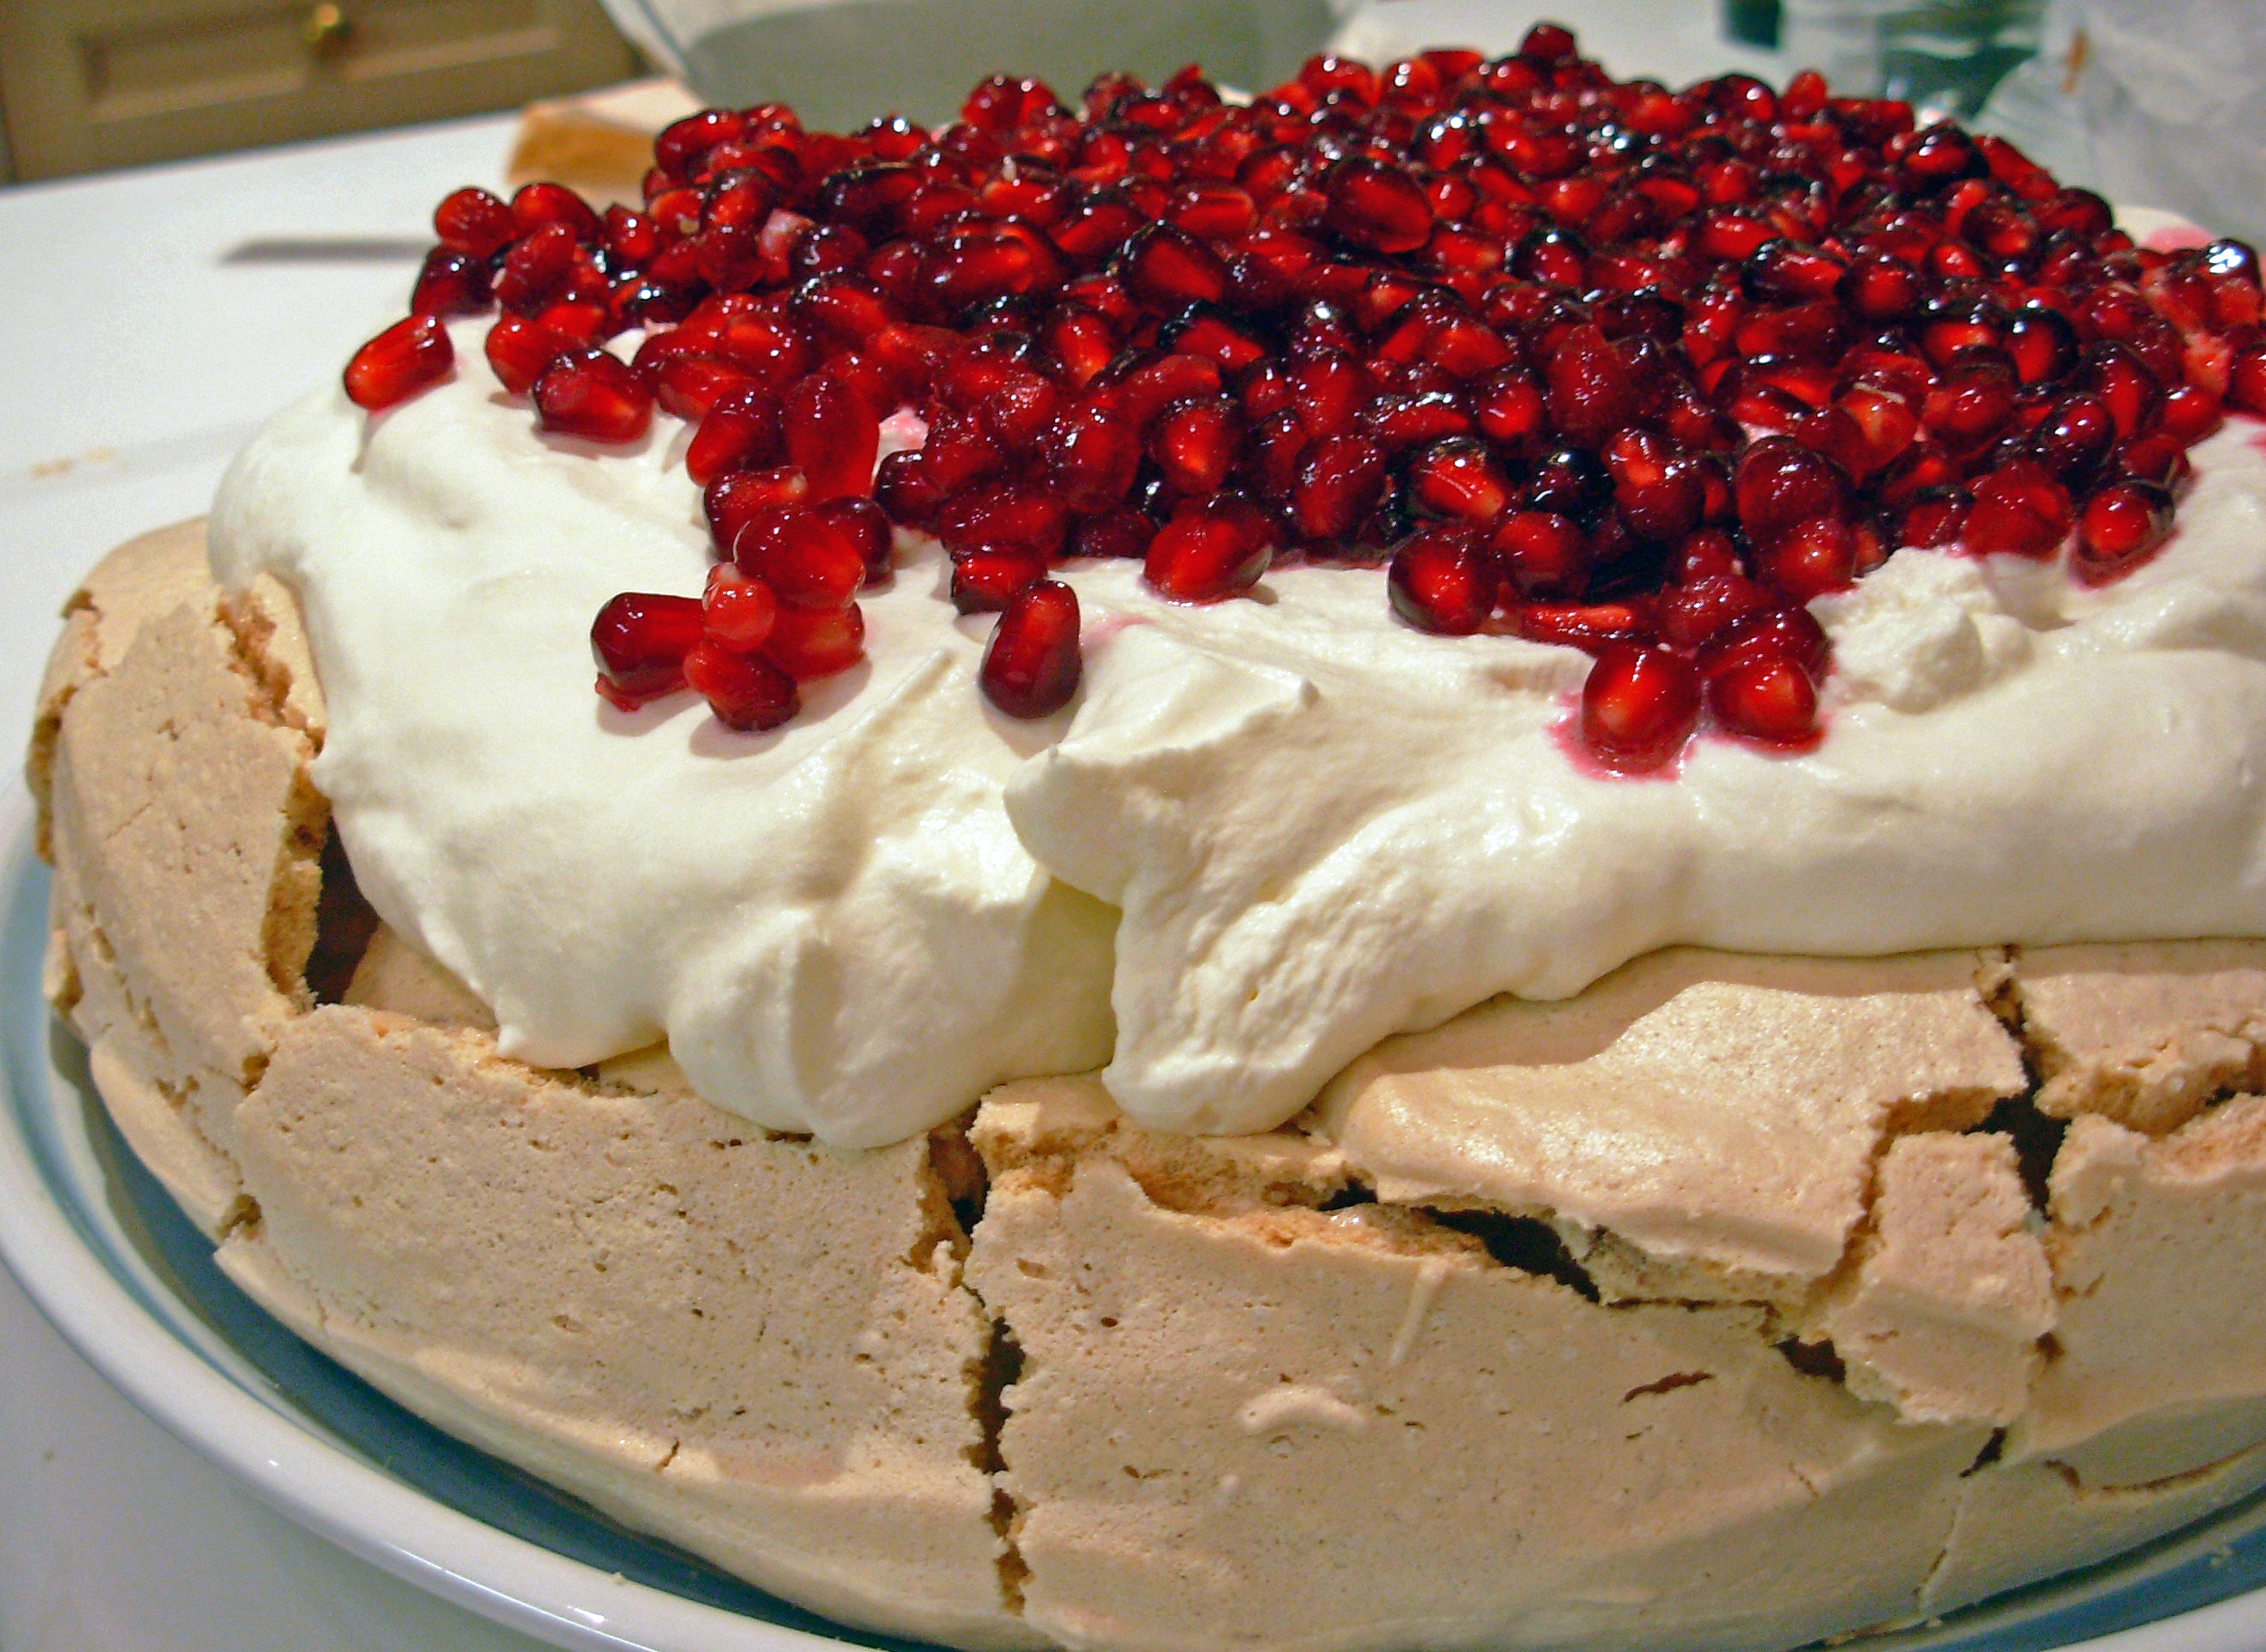 File:Christmas pavlova.jpg - Wikipedia, the free encyclopedia